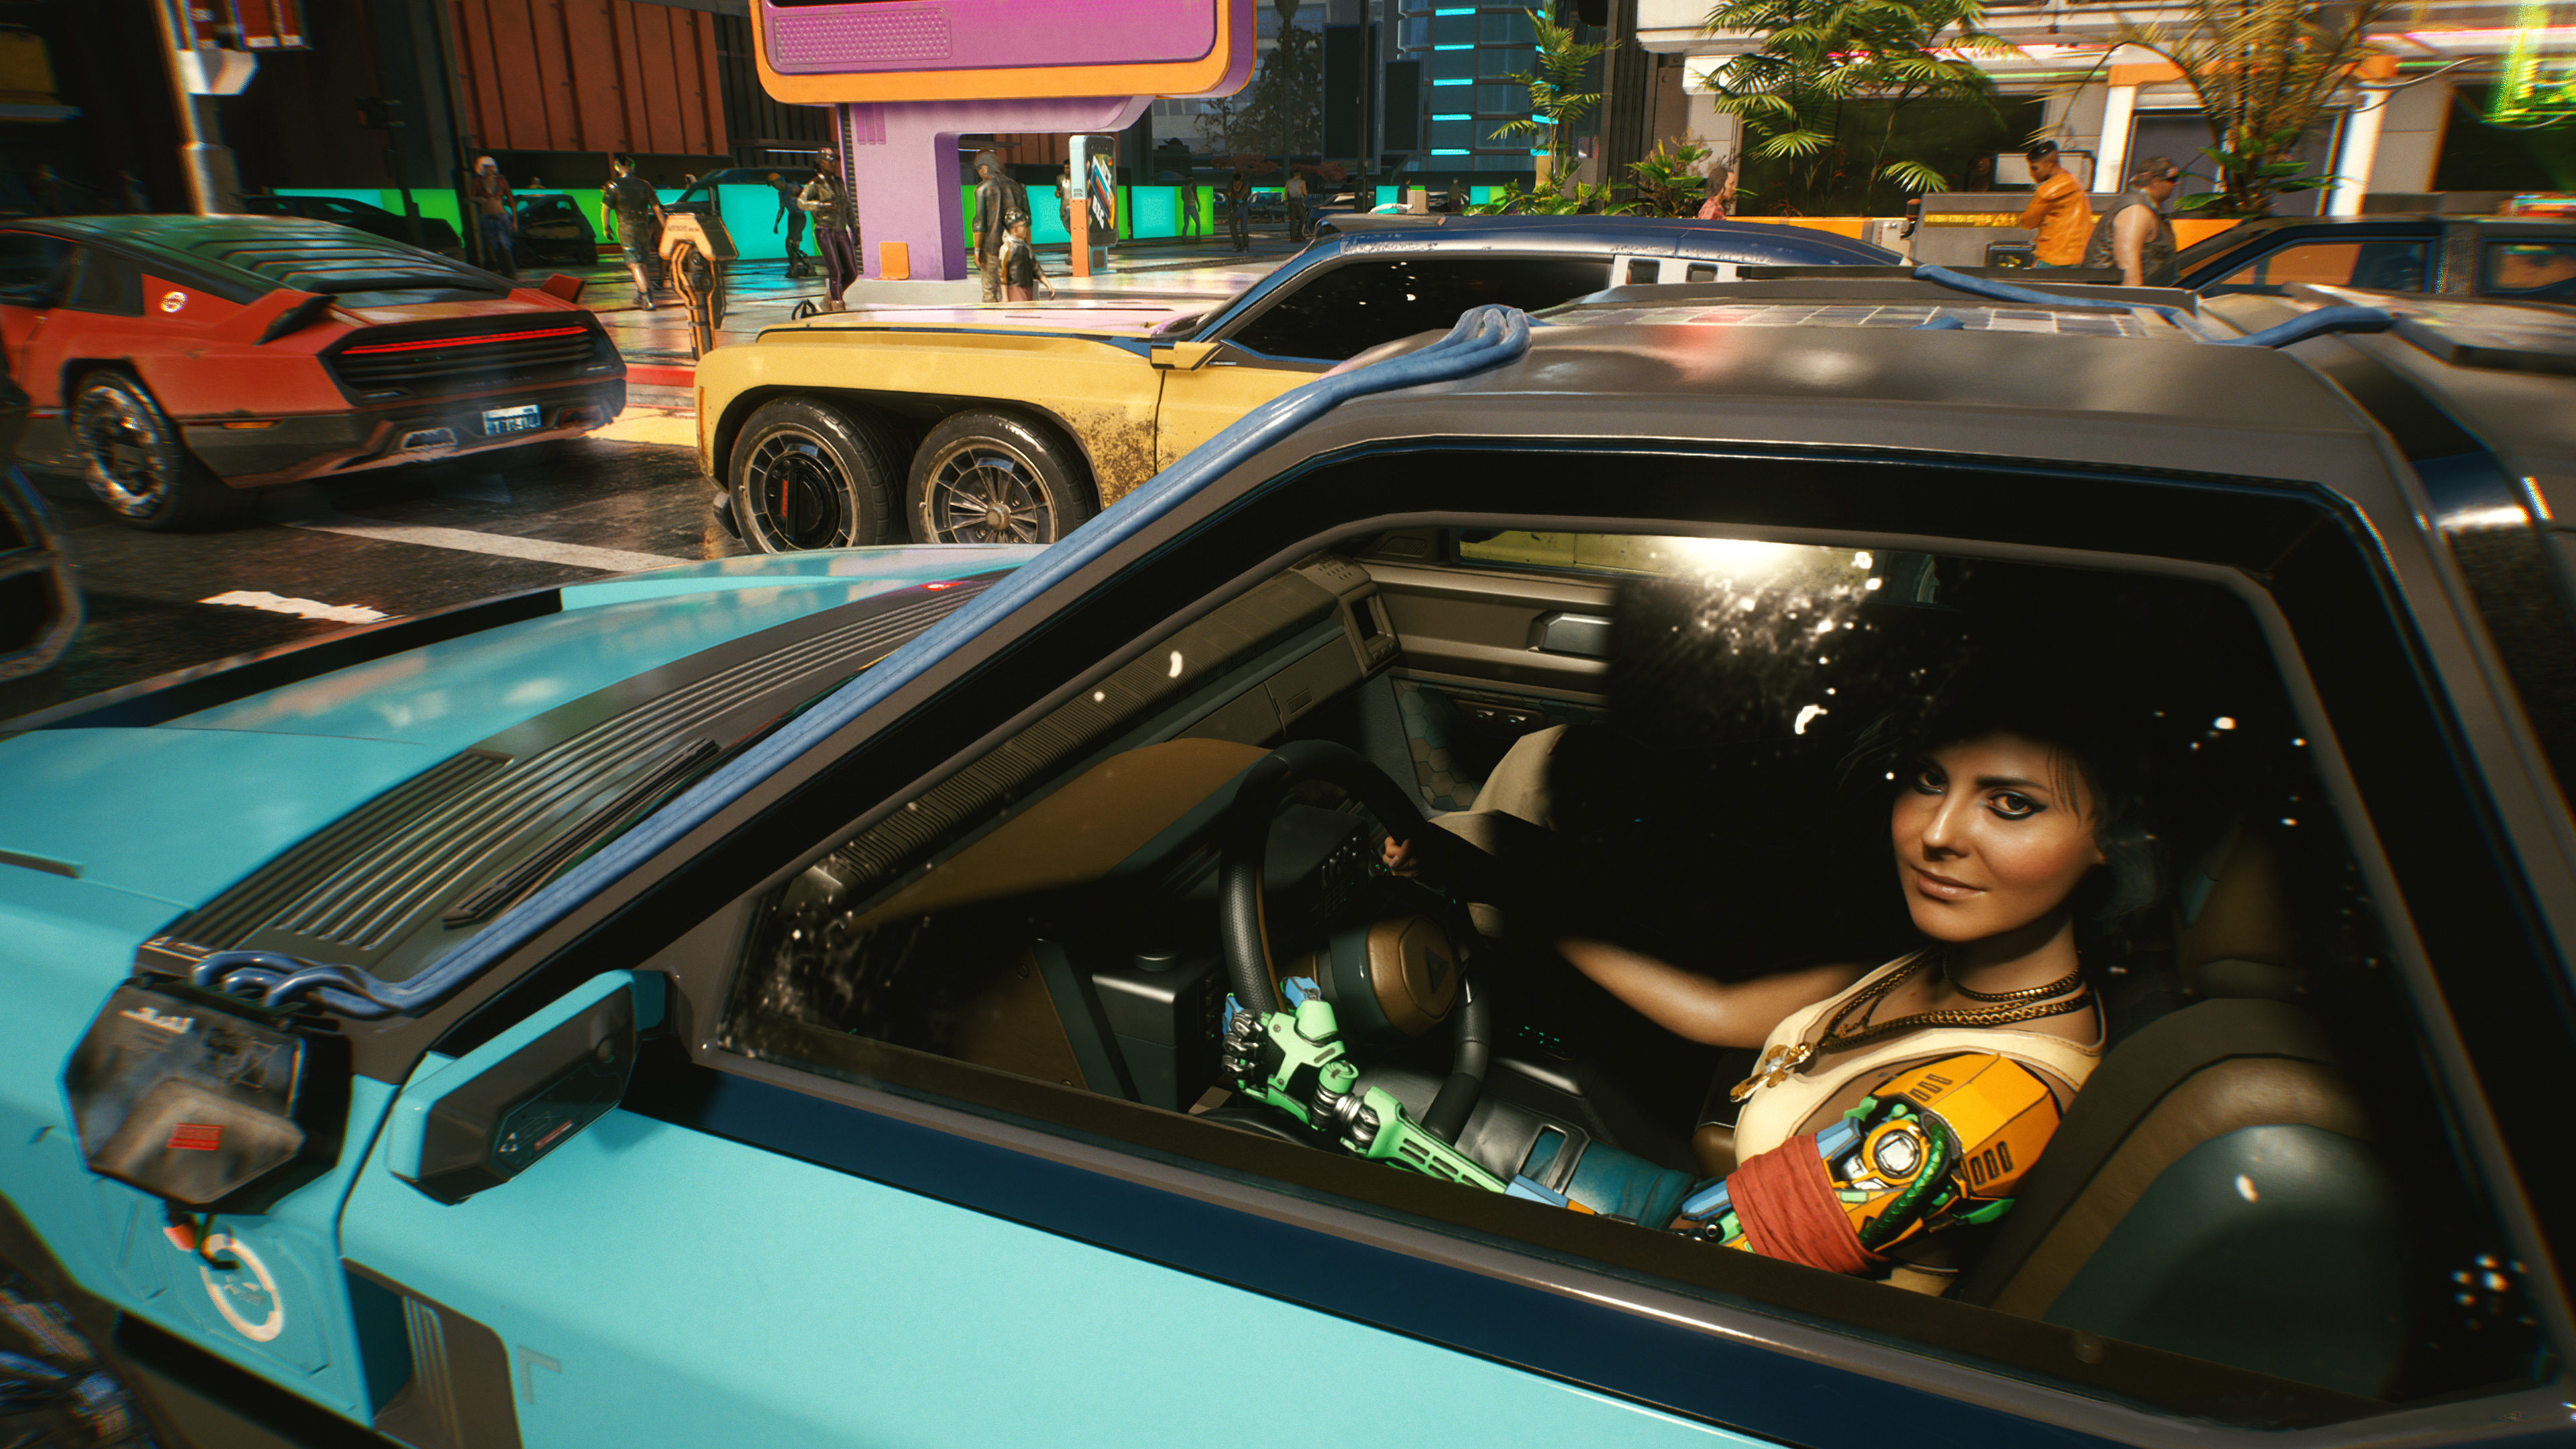 Driving a car in Cyberpunk 2077